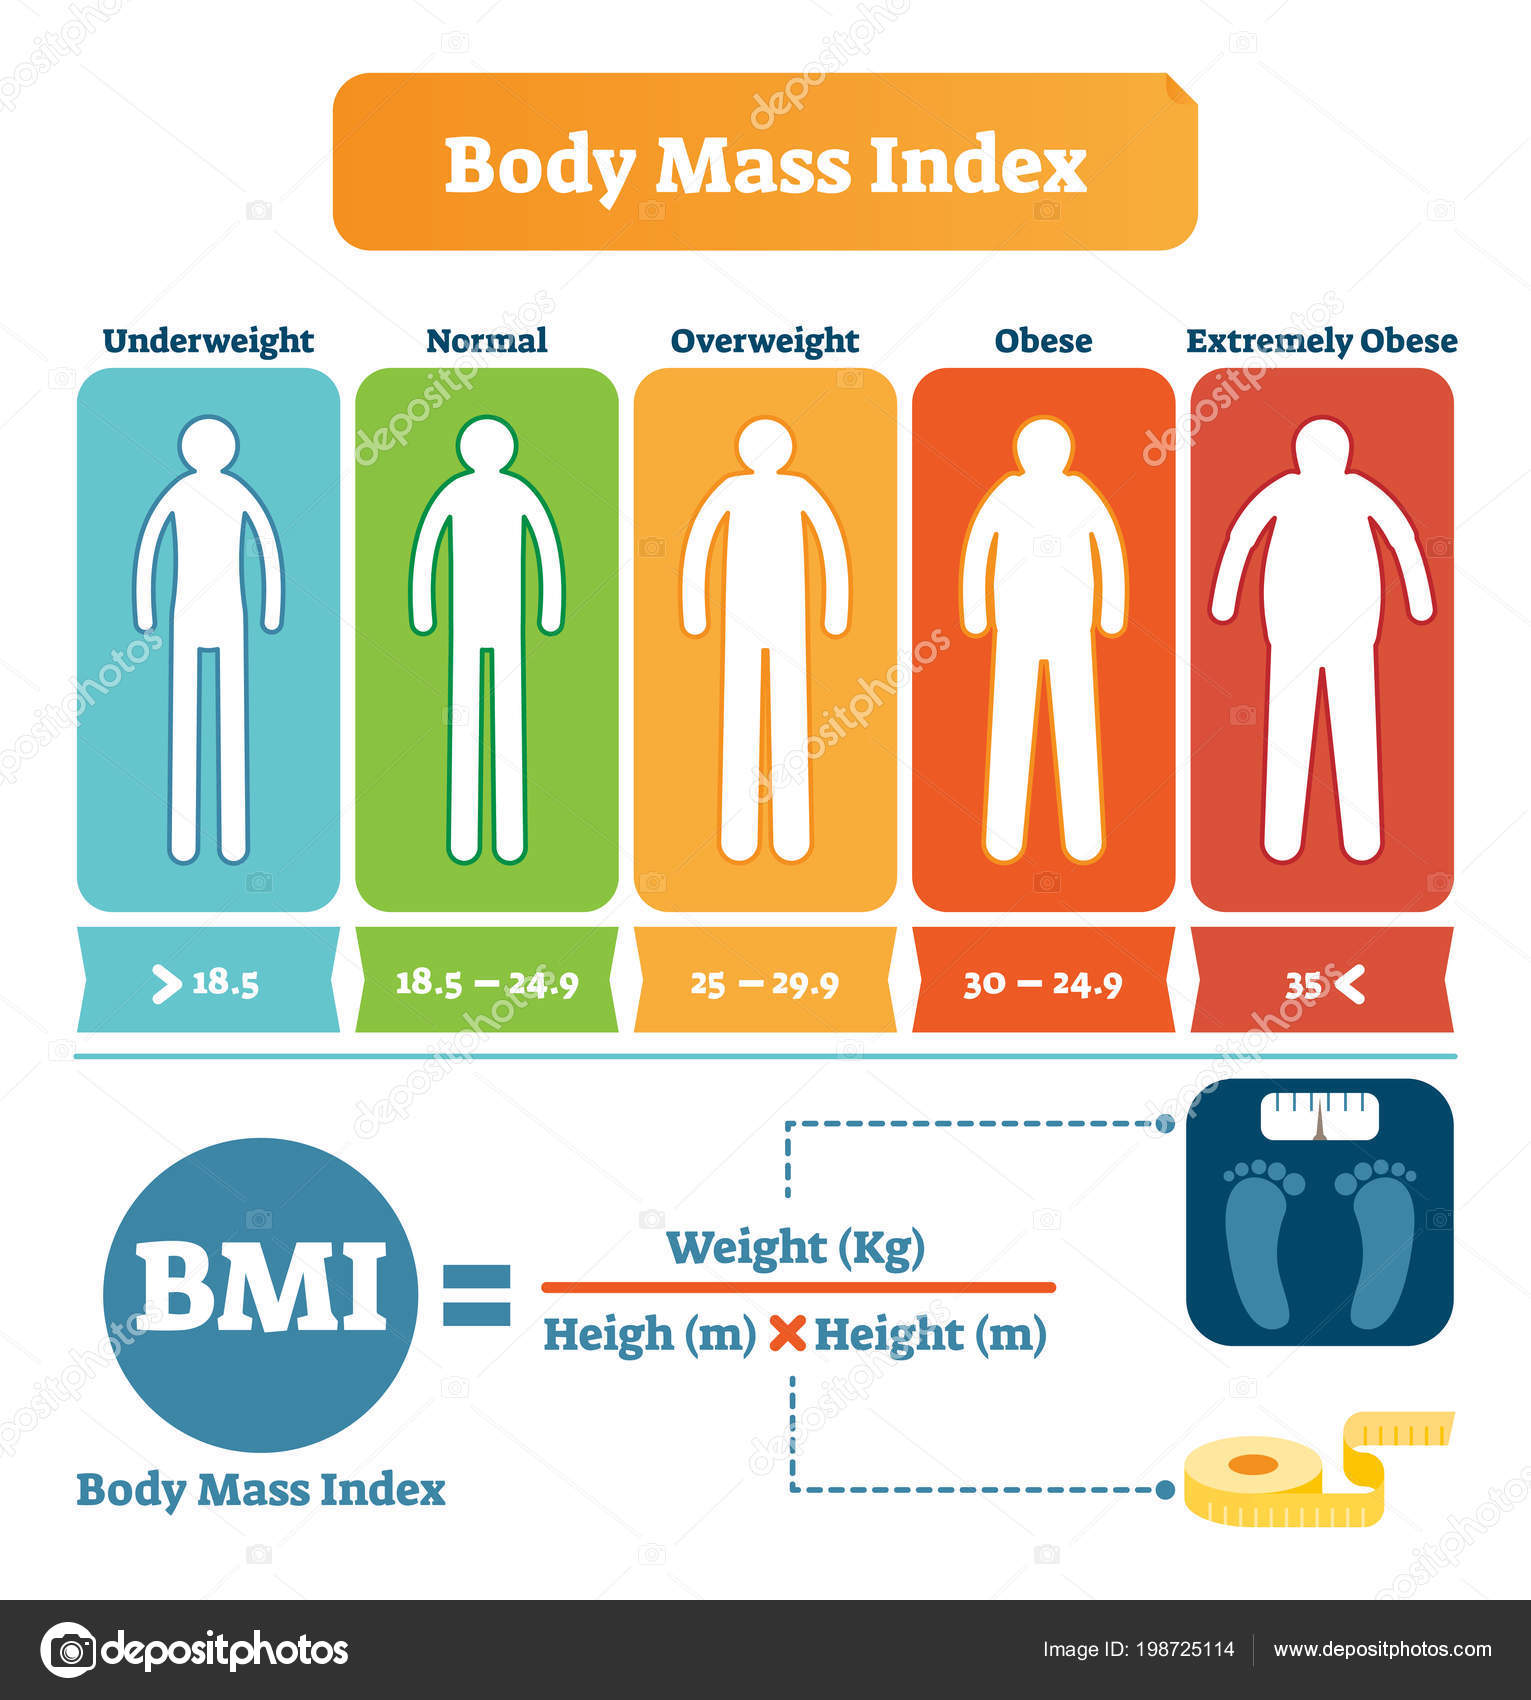 body mass index table with bmi formula example health. Black Bedroom Furniture Sets. Home Design Ideas